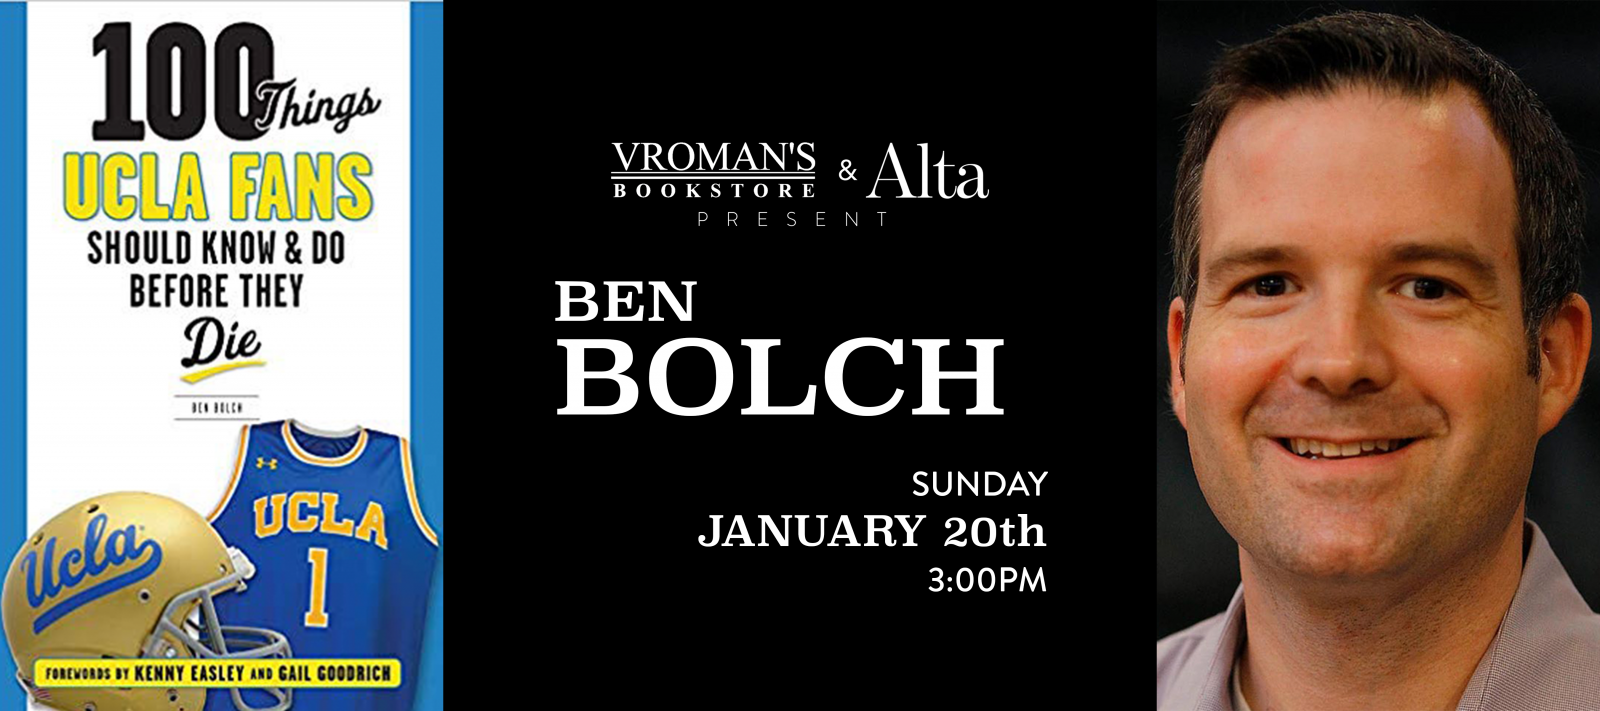 Ben Bolch Book Signing